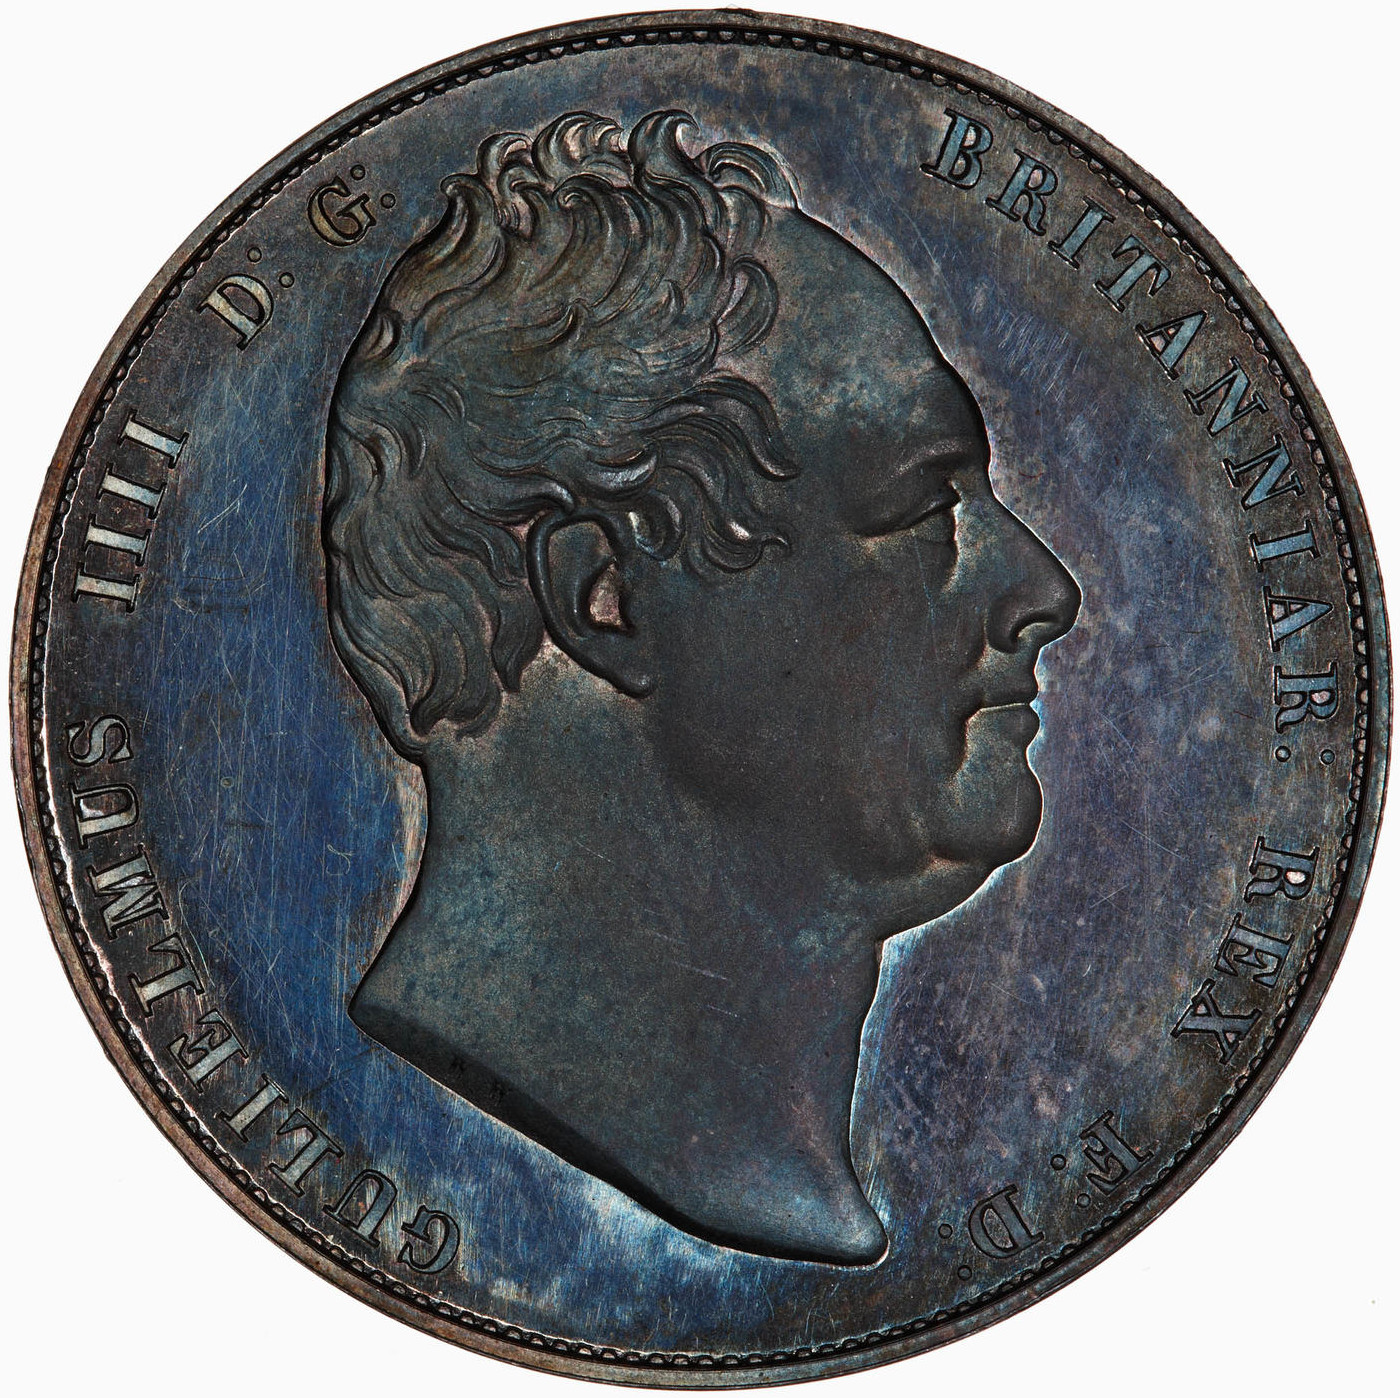 Halfcrown 1831 (Proof only): Photo Proof Coin - Halfcrown, William IV, Great Britain, 1831